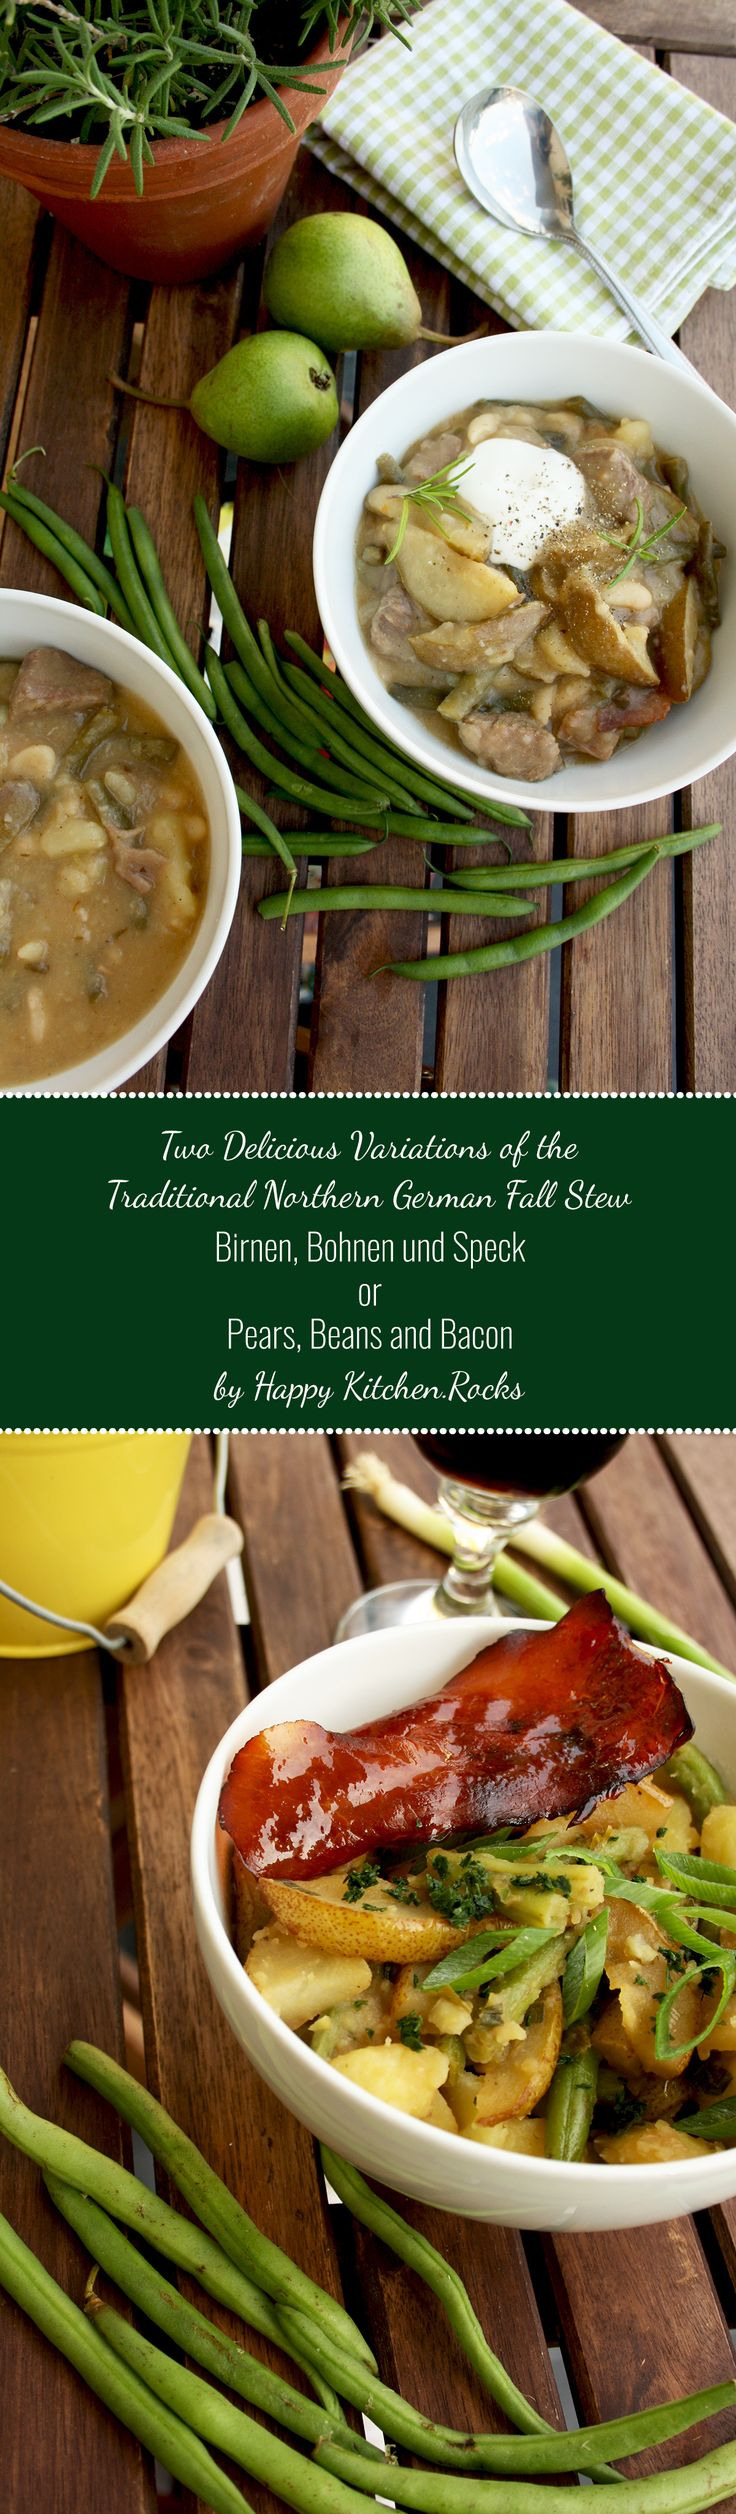 Birnen, Bohnen und Speck or Pears, Beans and Bacon - an adopted version of a perfect autumn and winter comfort meal from Northern Germany. Low-caloric, nutritious and easy to make.